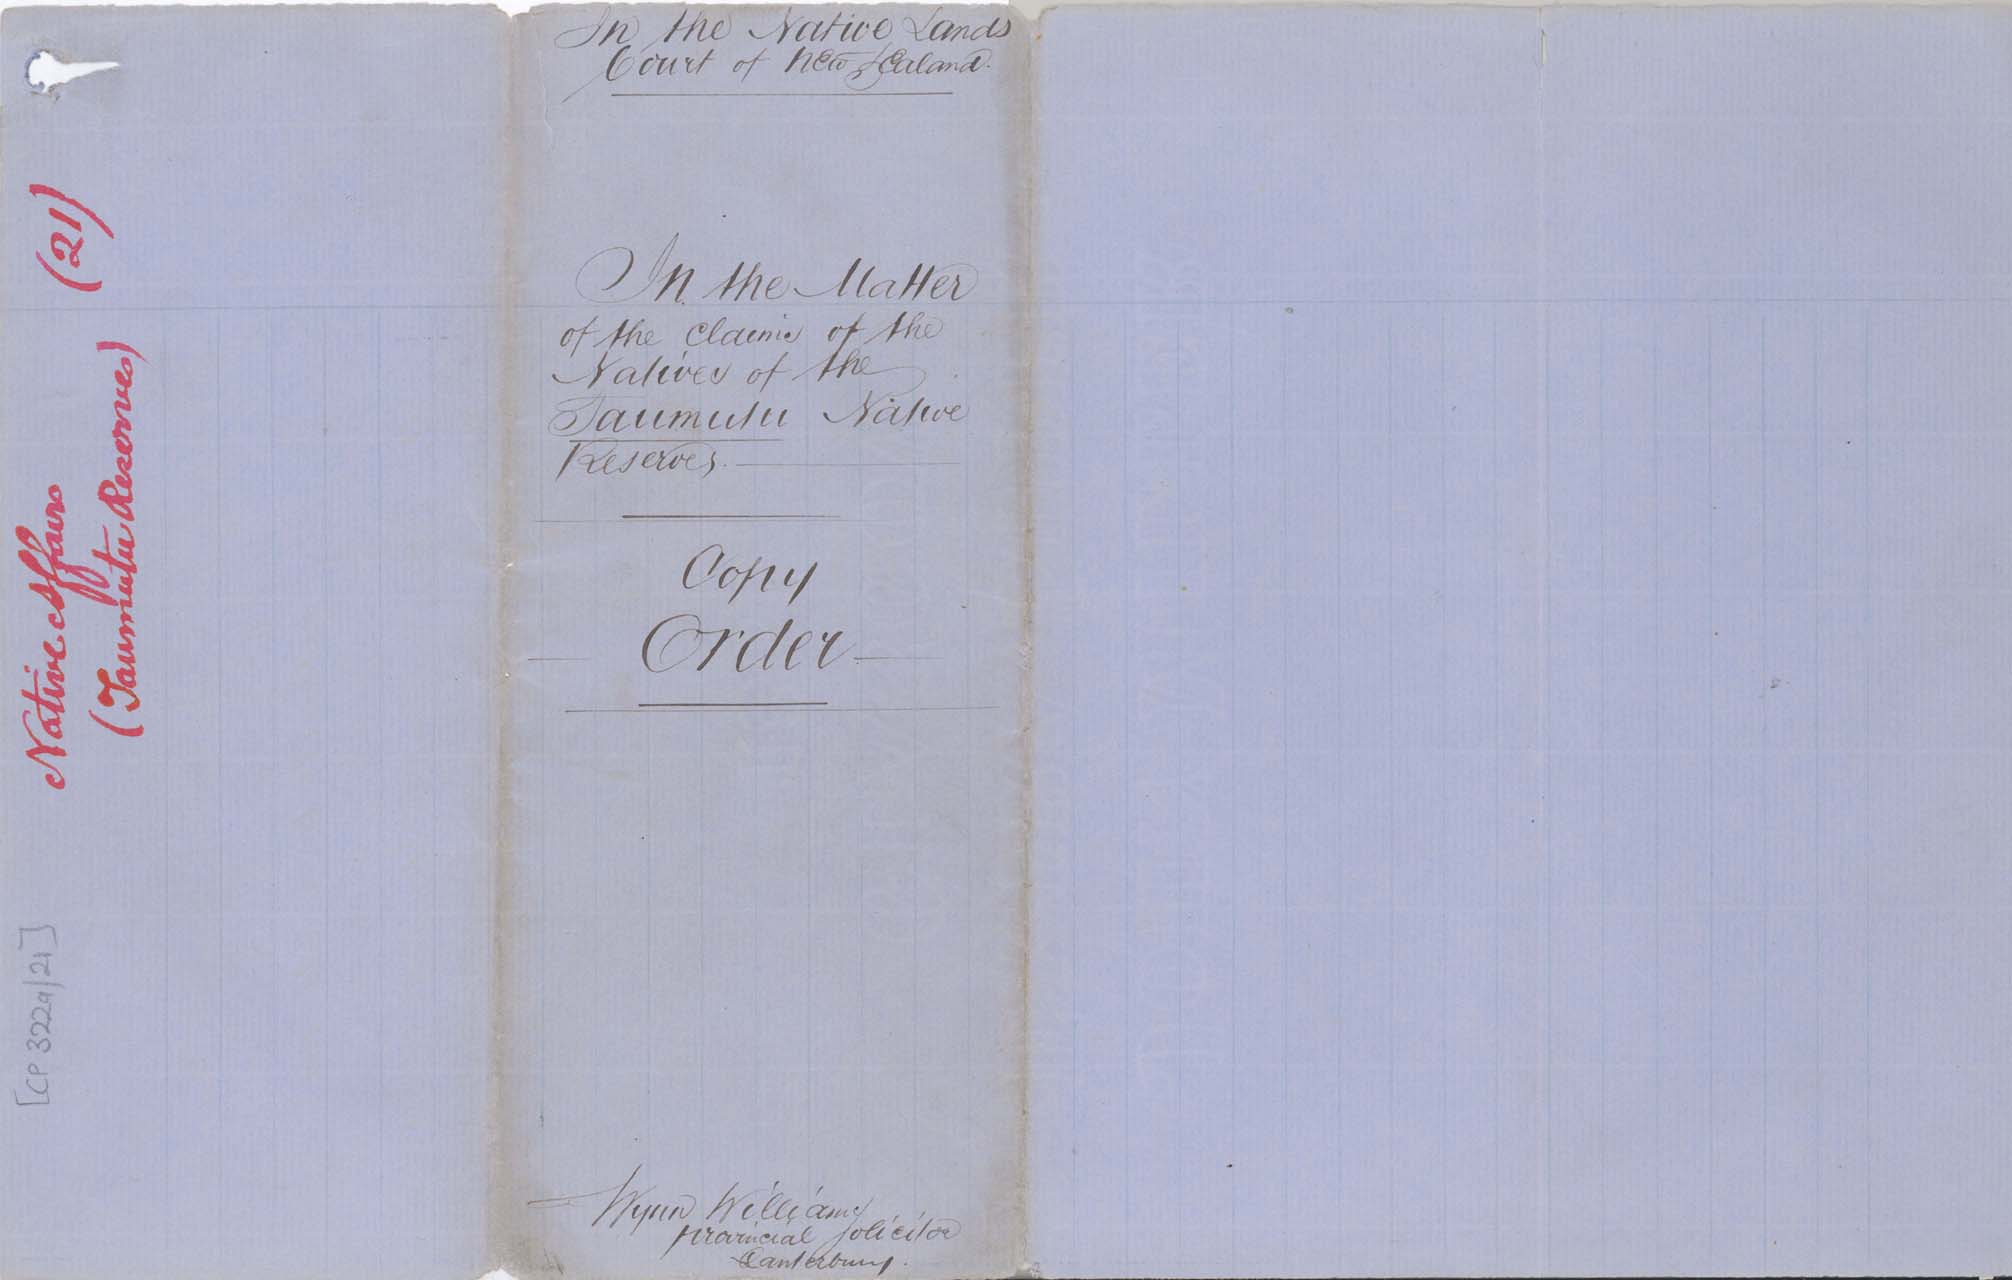 Descriptions - Taumutu Reserves awarded in 1868 - Cover